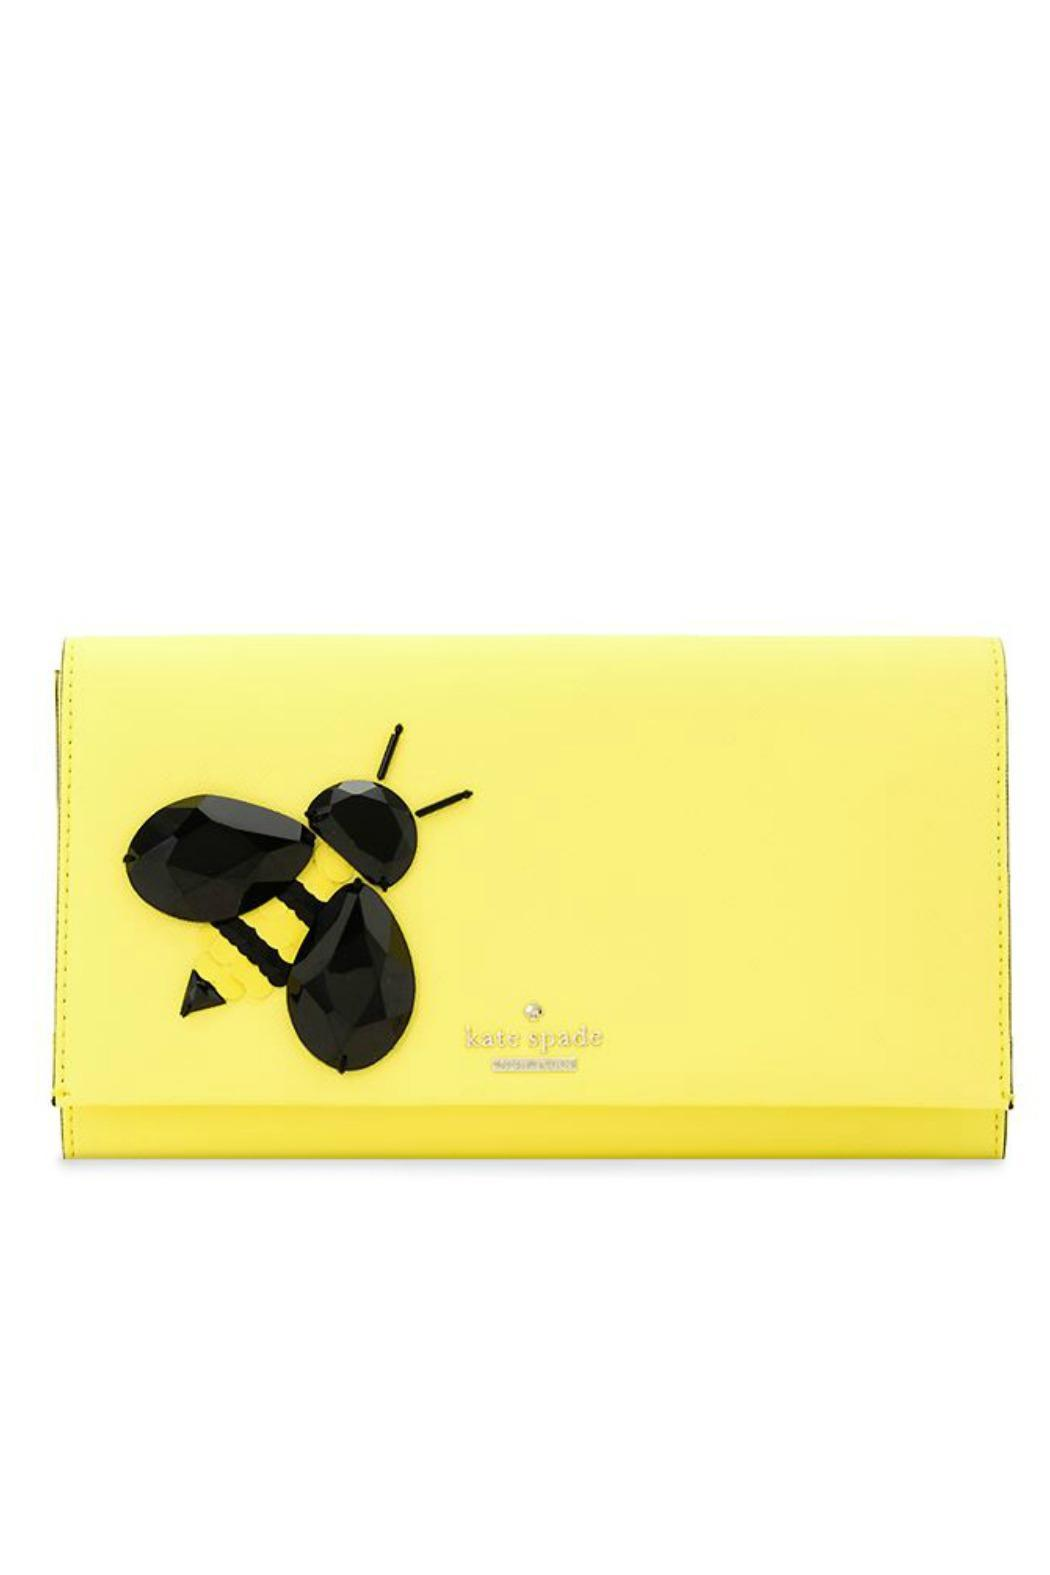 Kate Spade New York Bee Tally Clutch from New Hampshire by Stiletto ... 9e5107c9d6